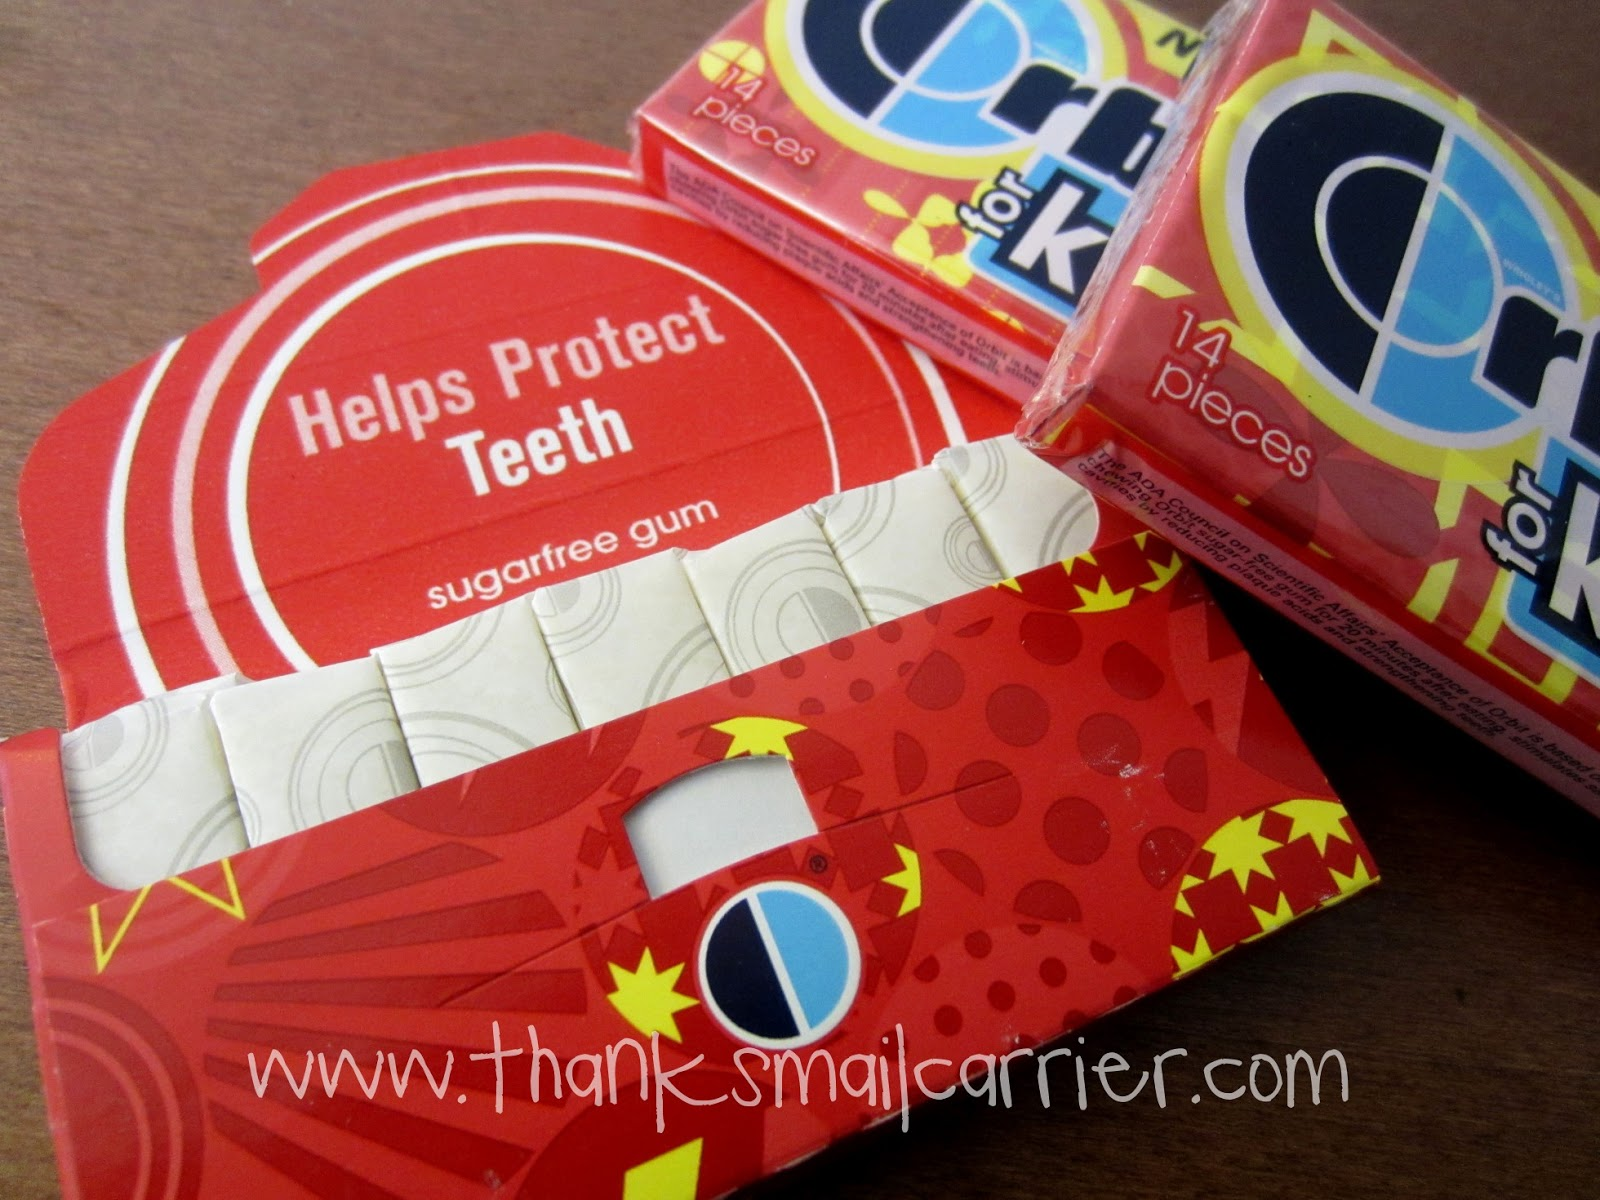 Orbit for Kids gum review